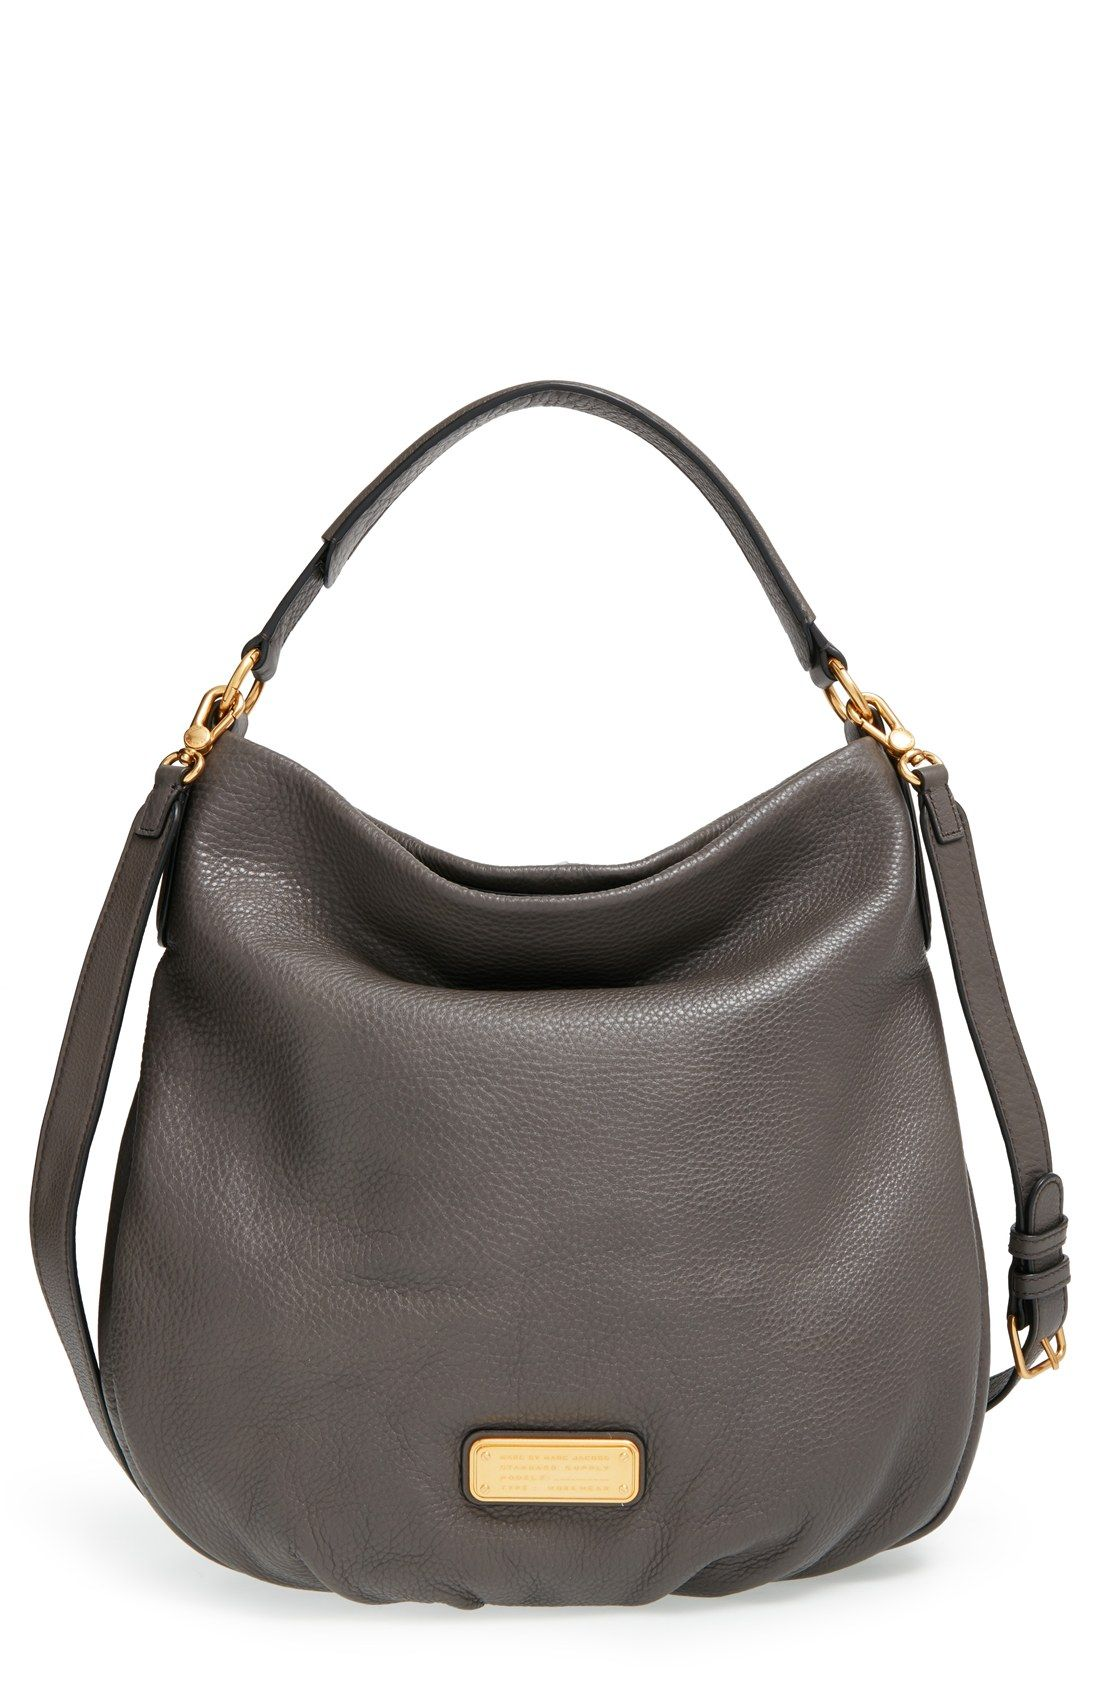 This Slouchy Hobo Bag Is Definitely An Essential With Its Adjule Strap And Roomy Interior